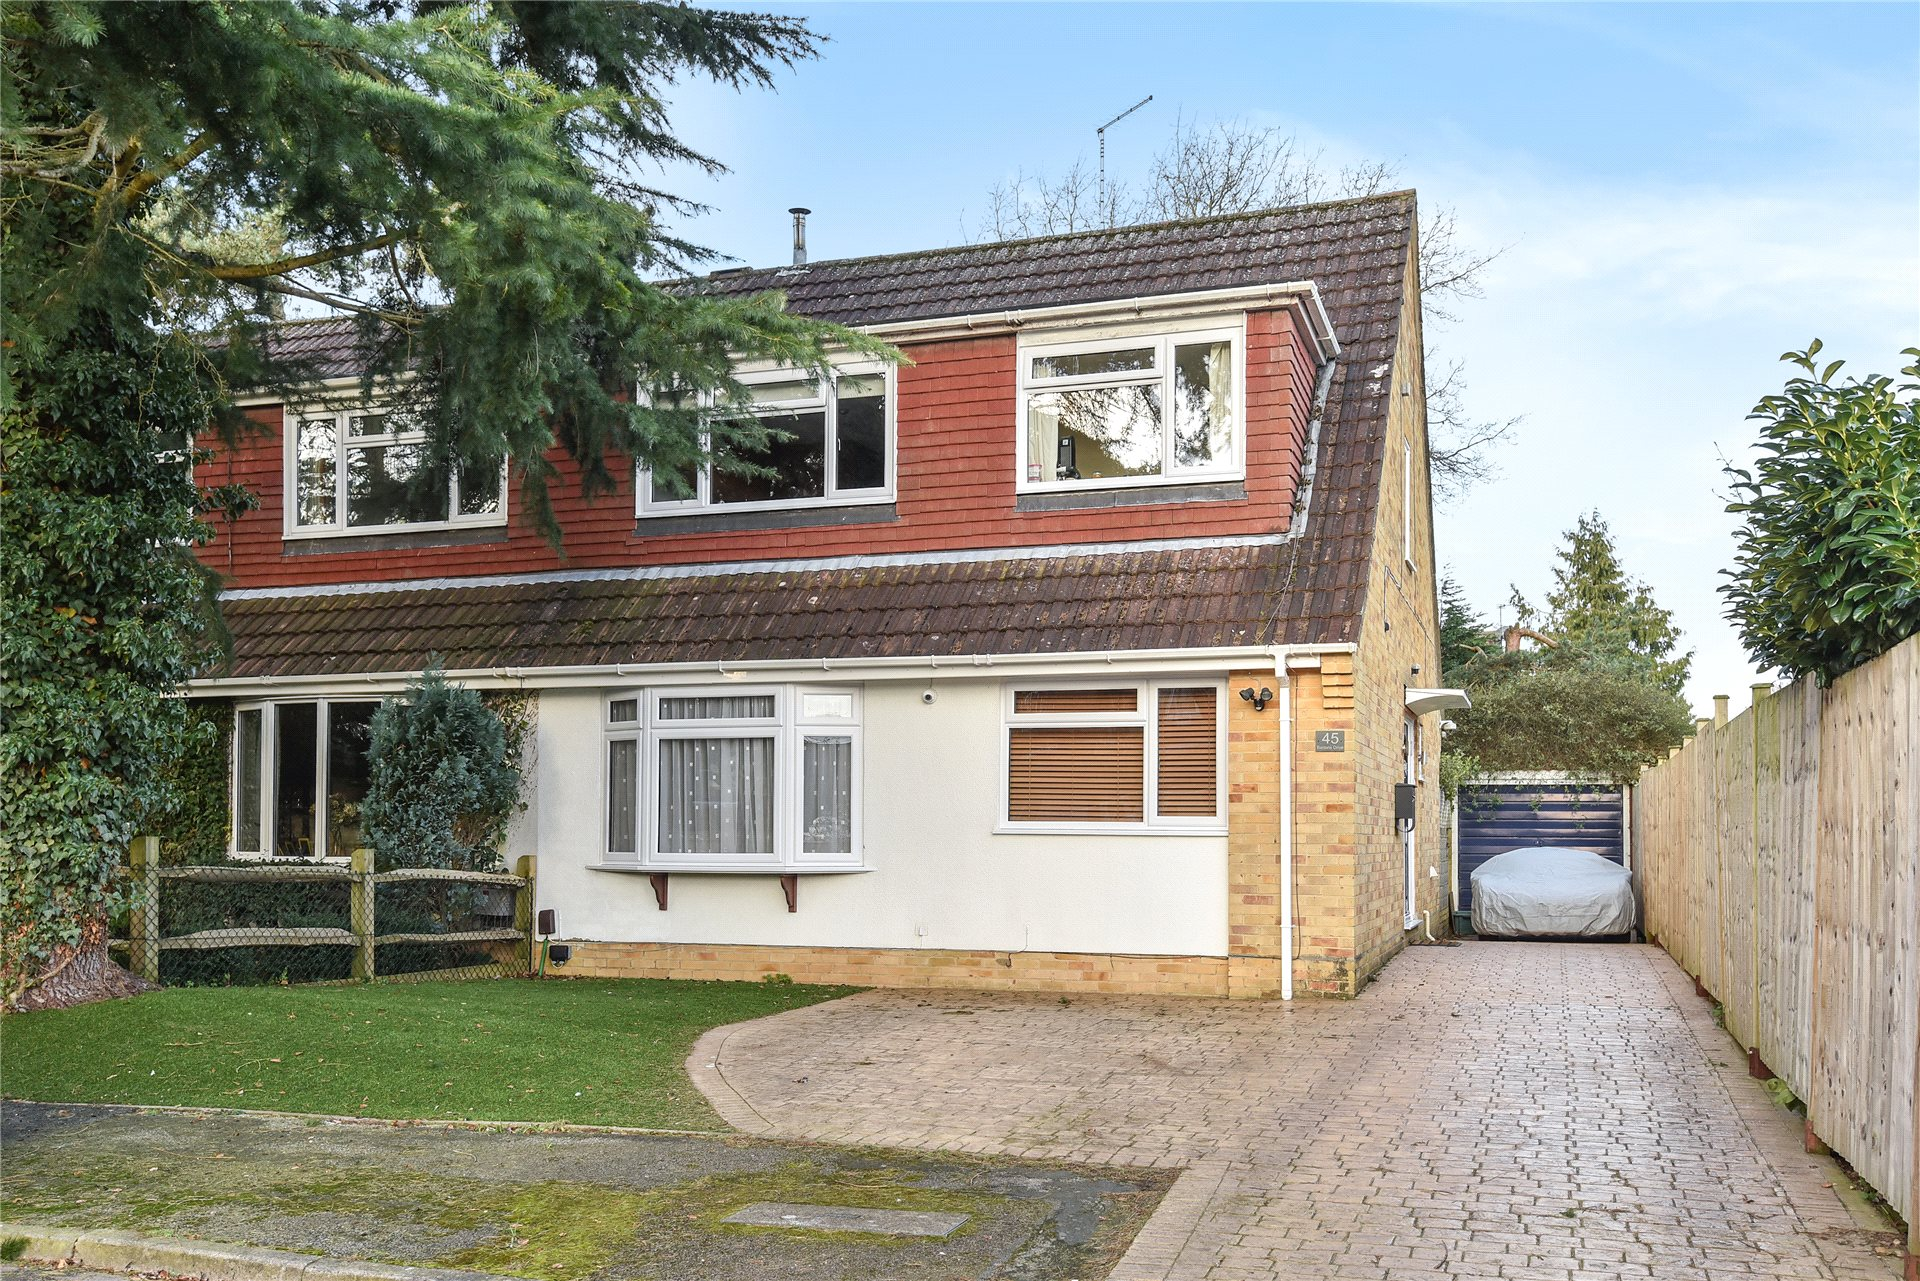 3 Bedrooms Semi Detached House for sale in Bartons Drive, Yateley, Hampshire, GU46